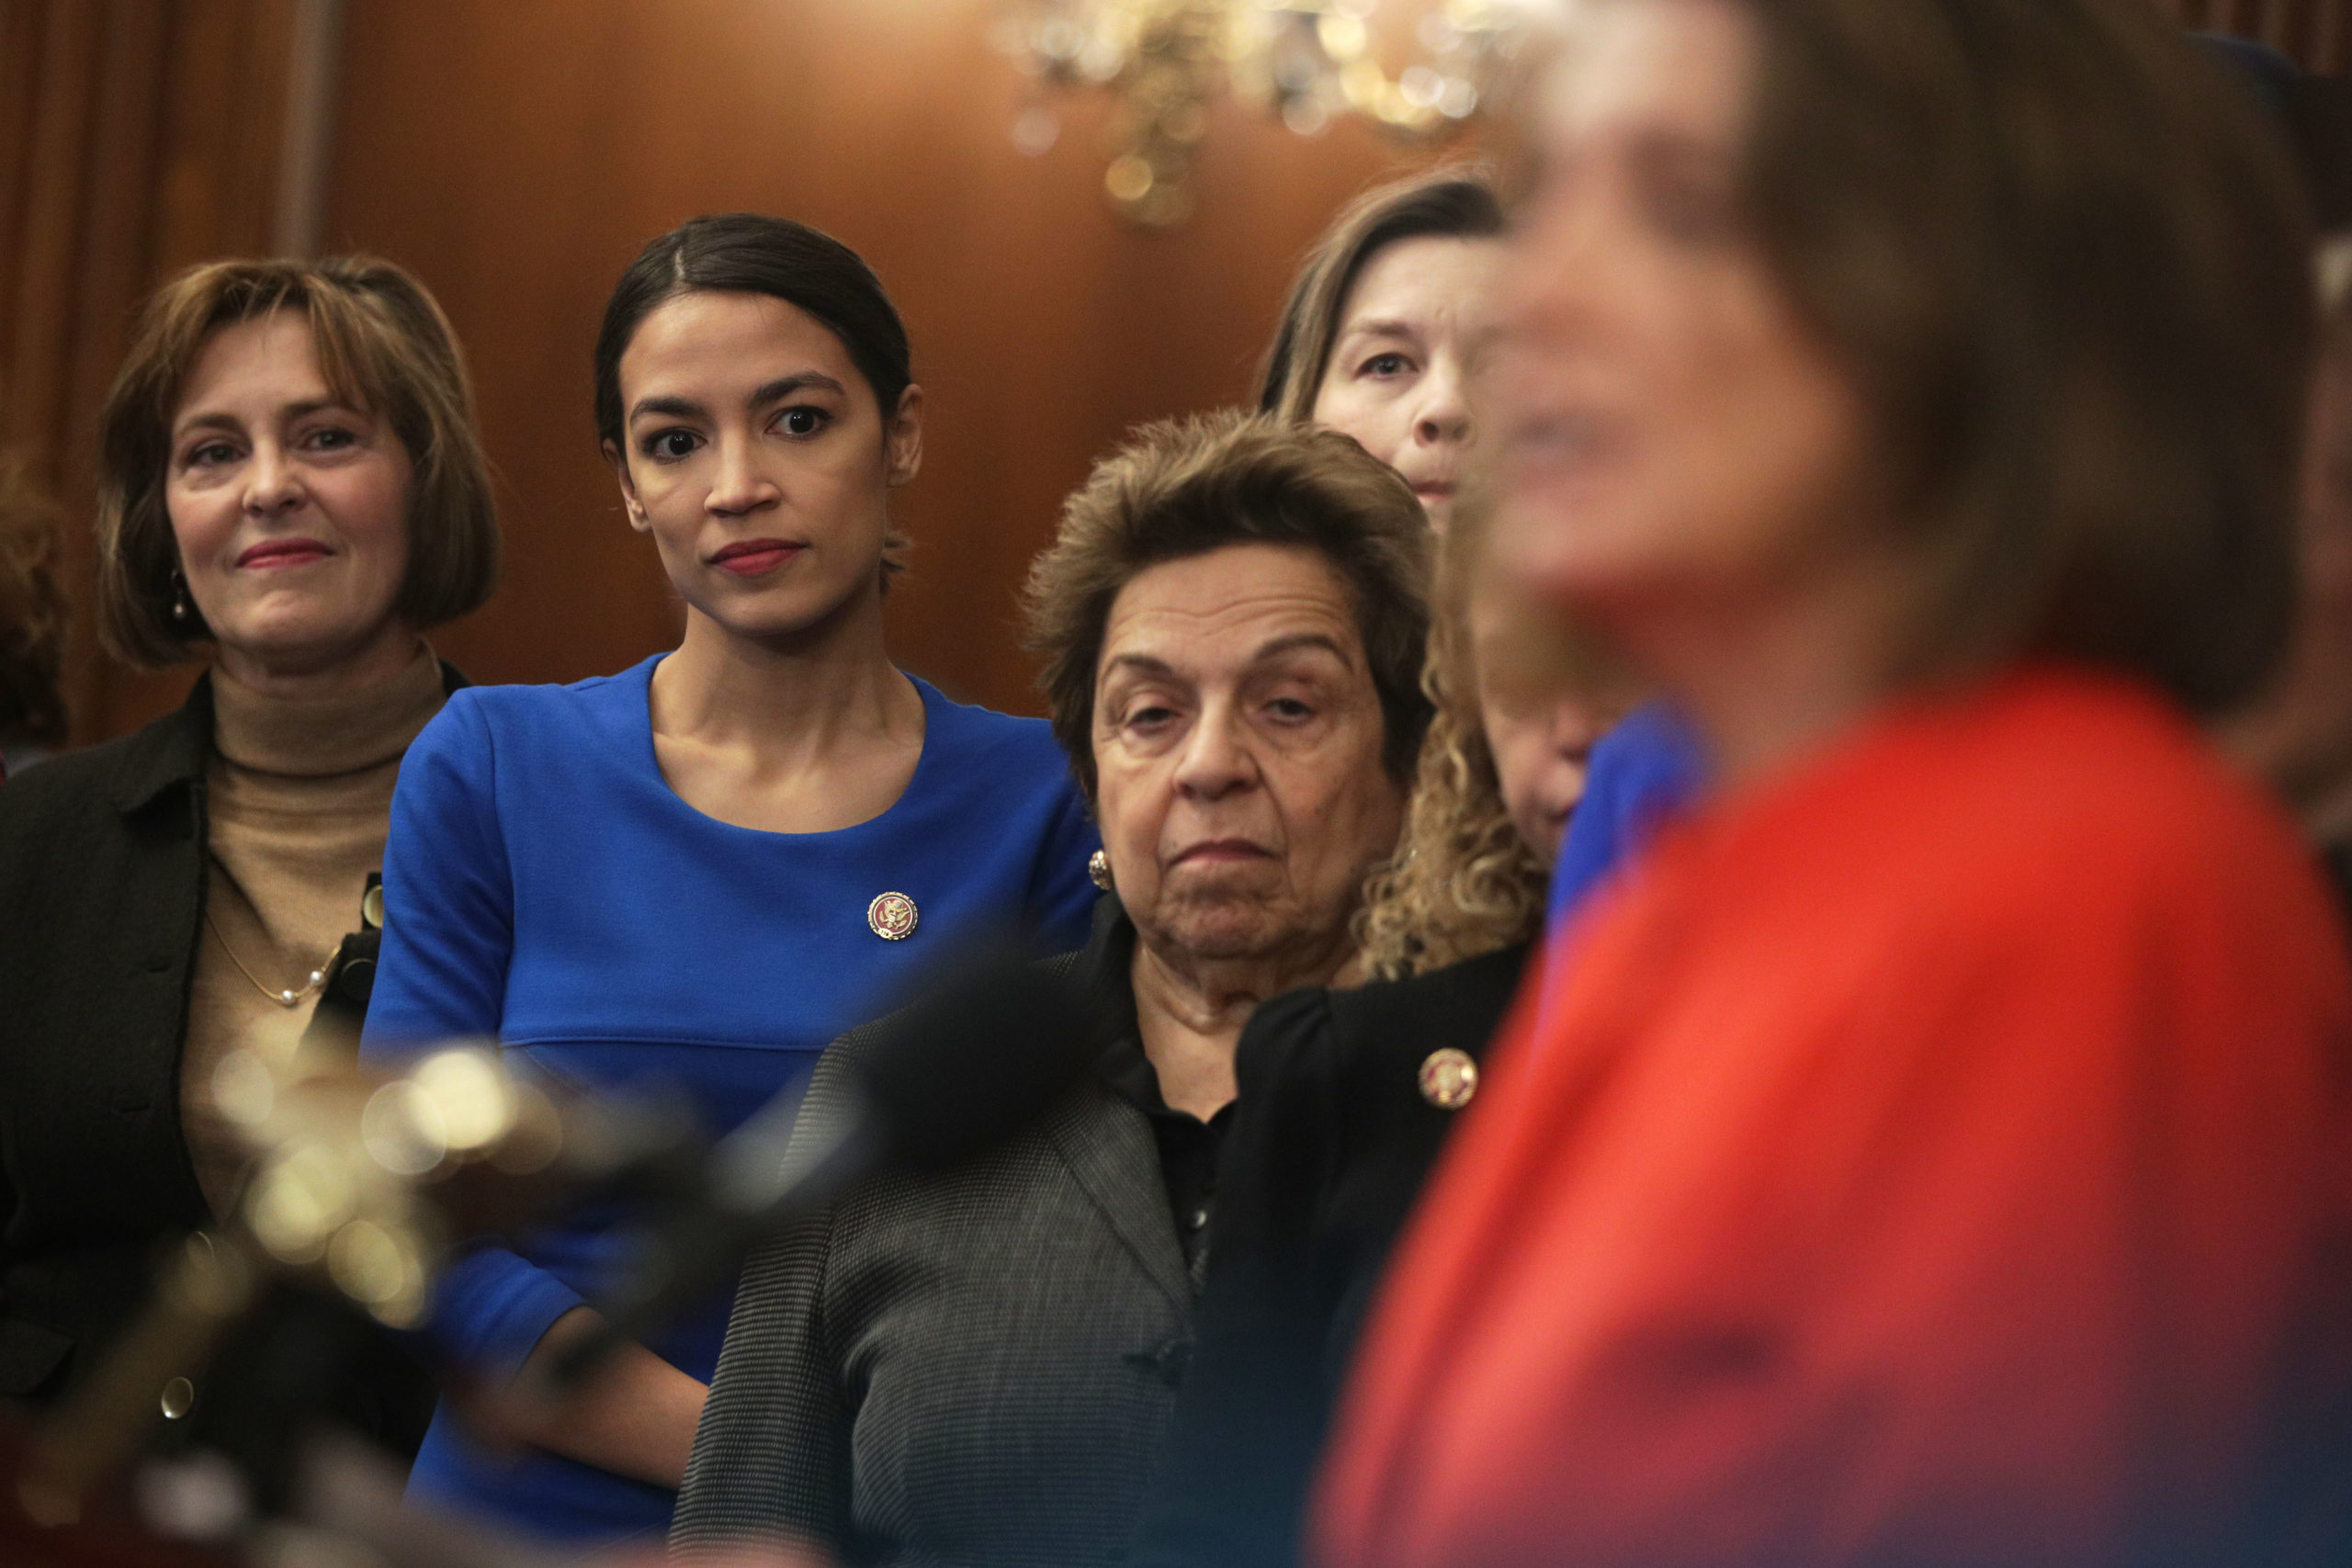 """WASHINGTON, DC - JANUARY 30: (L-R) U.S. Rep. Kathy Castor (D-FL), Rep. Alexandria Ocasio-Cortez (D-NY), and Rep. Donna Shalala (D-FL) listen as Speaker of the House Rep. Nancy Pelosi (D-CA) speaks during a news conference at the U.S. Capitol January 30, 2019 in Washington, DC. House Democrats held a news conference to introduce the """"Paycheck Fairness Act."""" (Photo by Alex Wong/Getty Images)"""